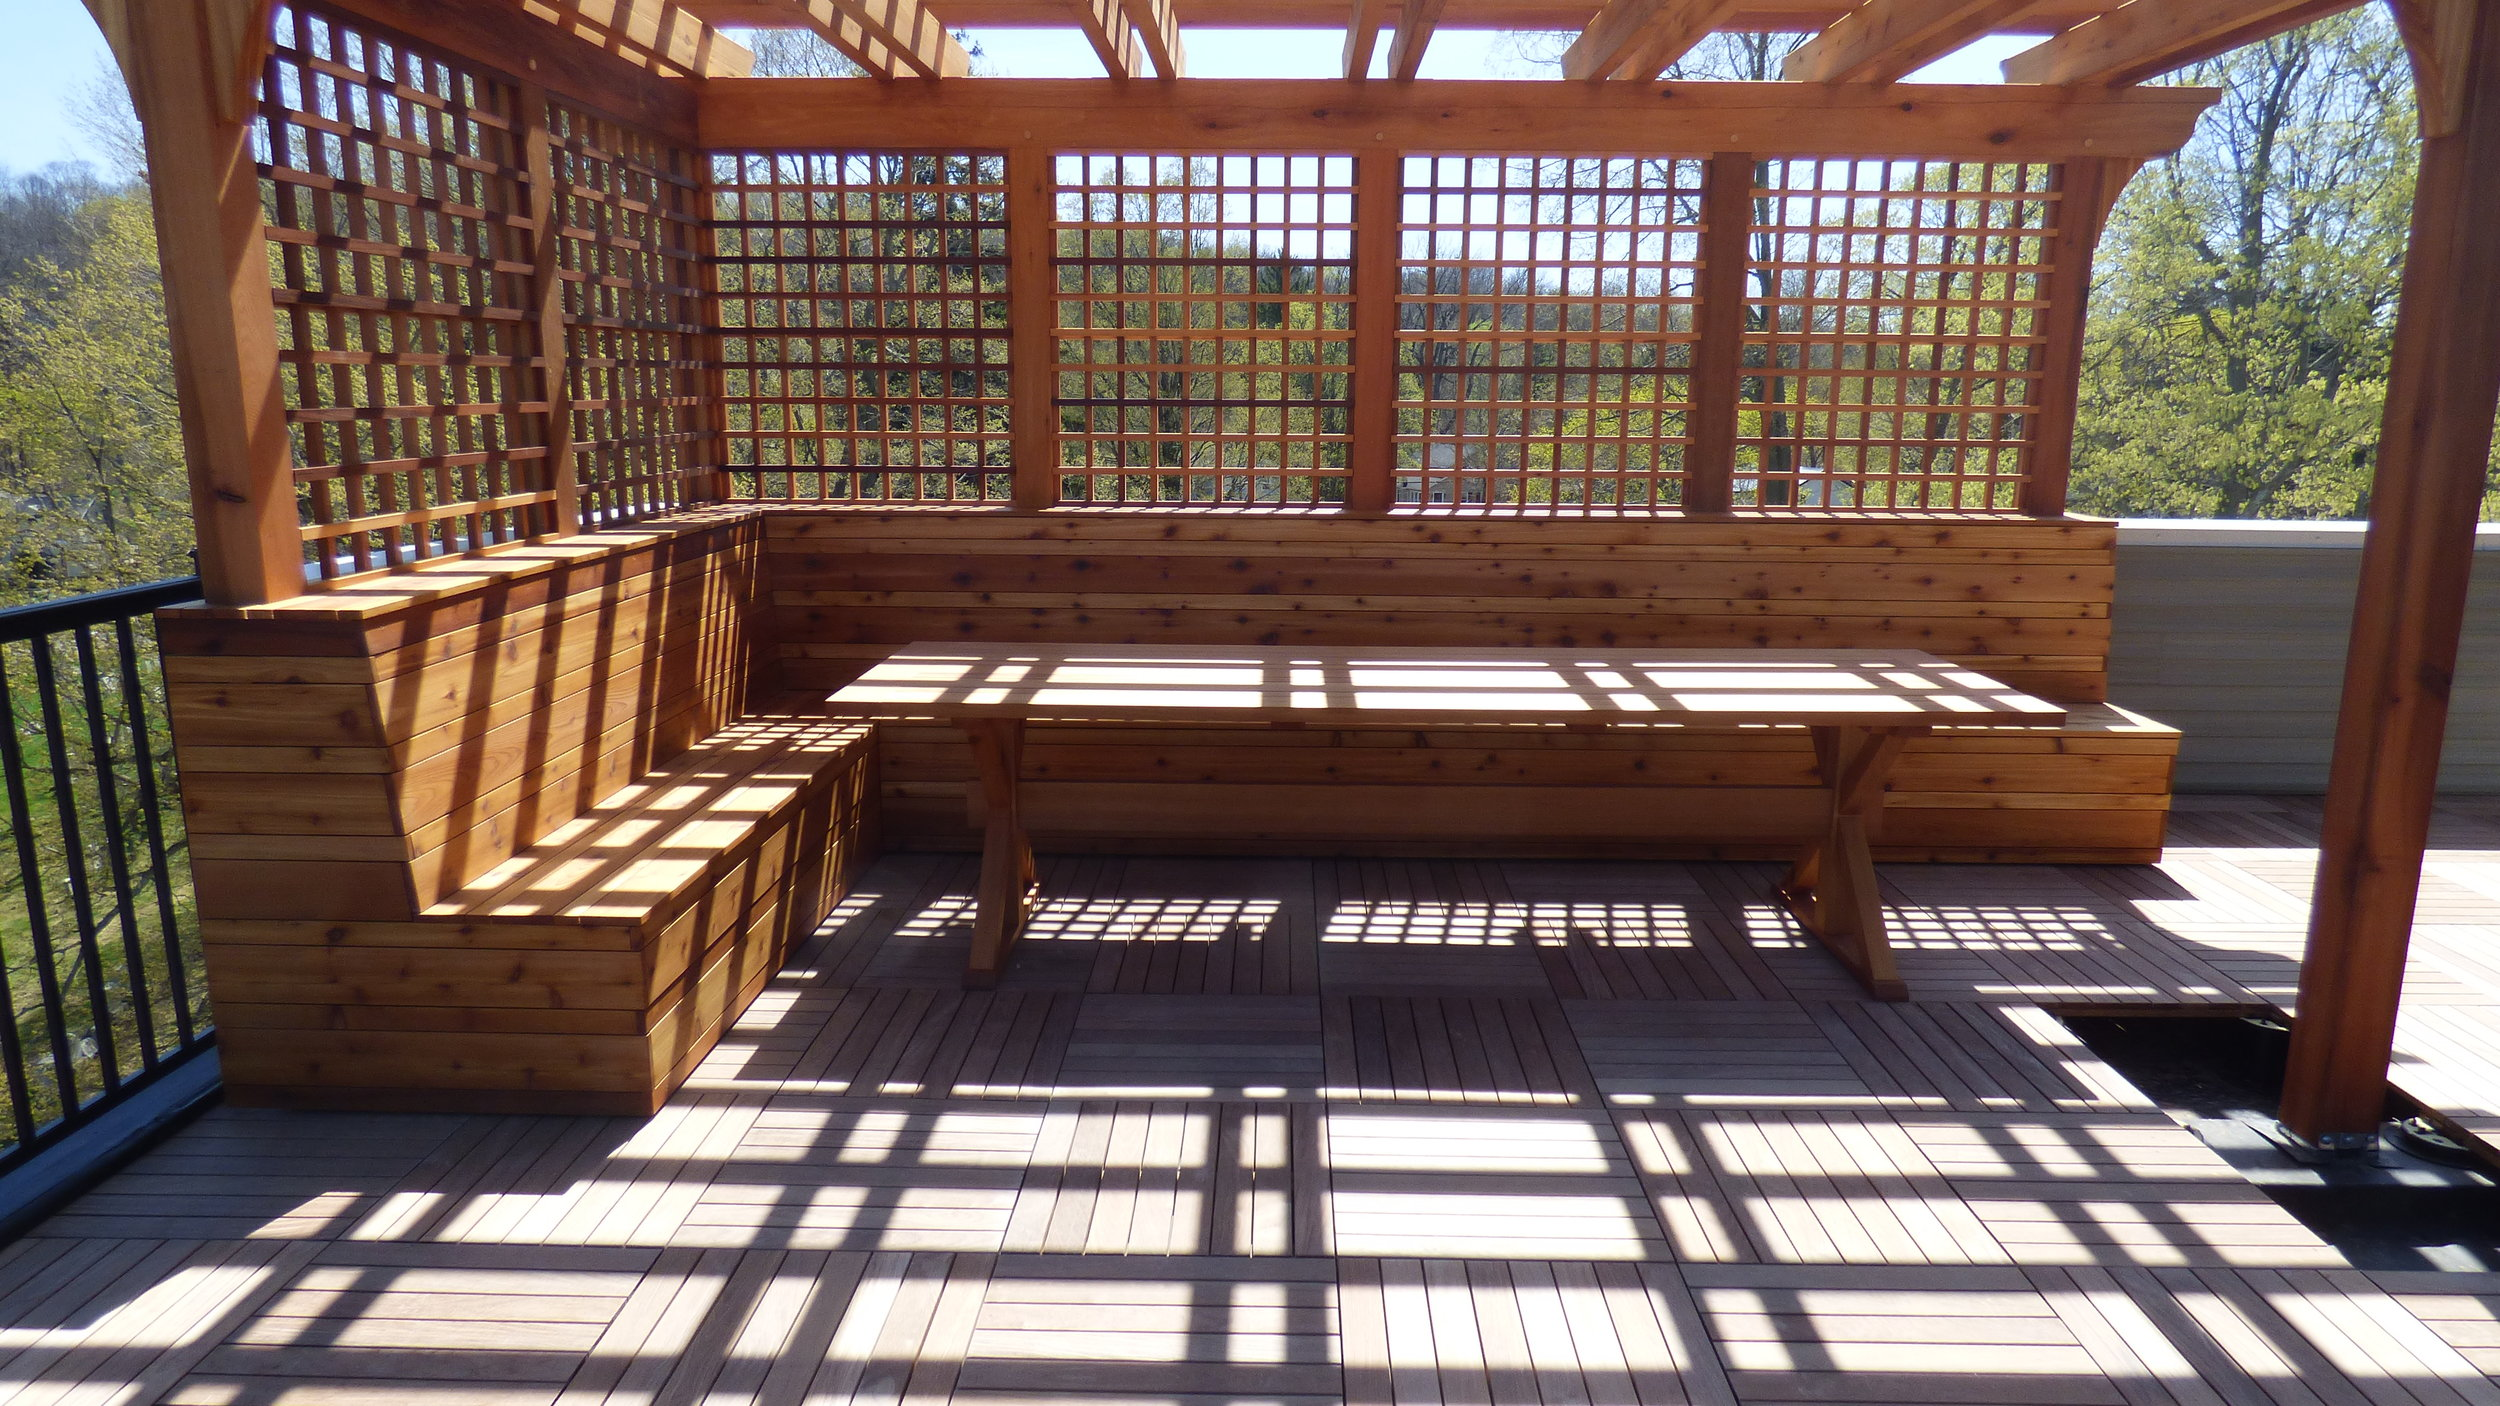 Pergola, seating, and table on a townhouse rooftop deck